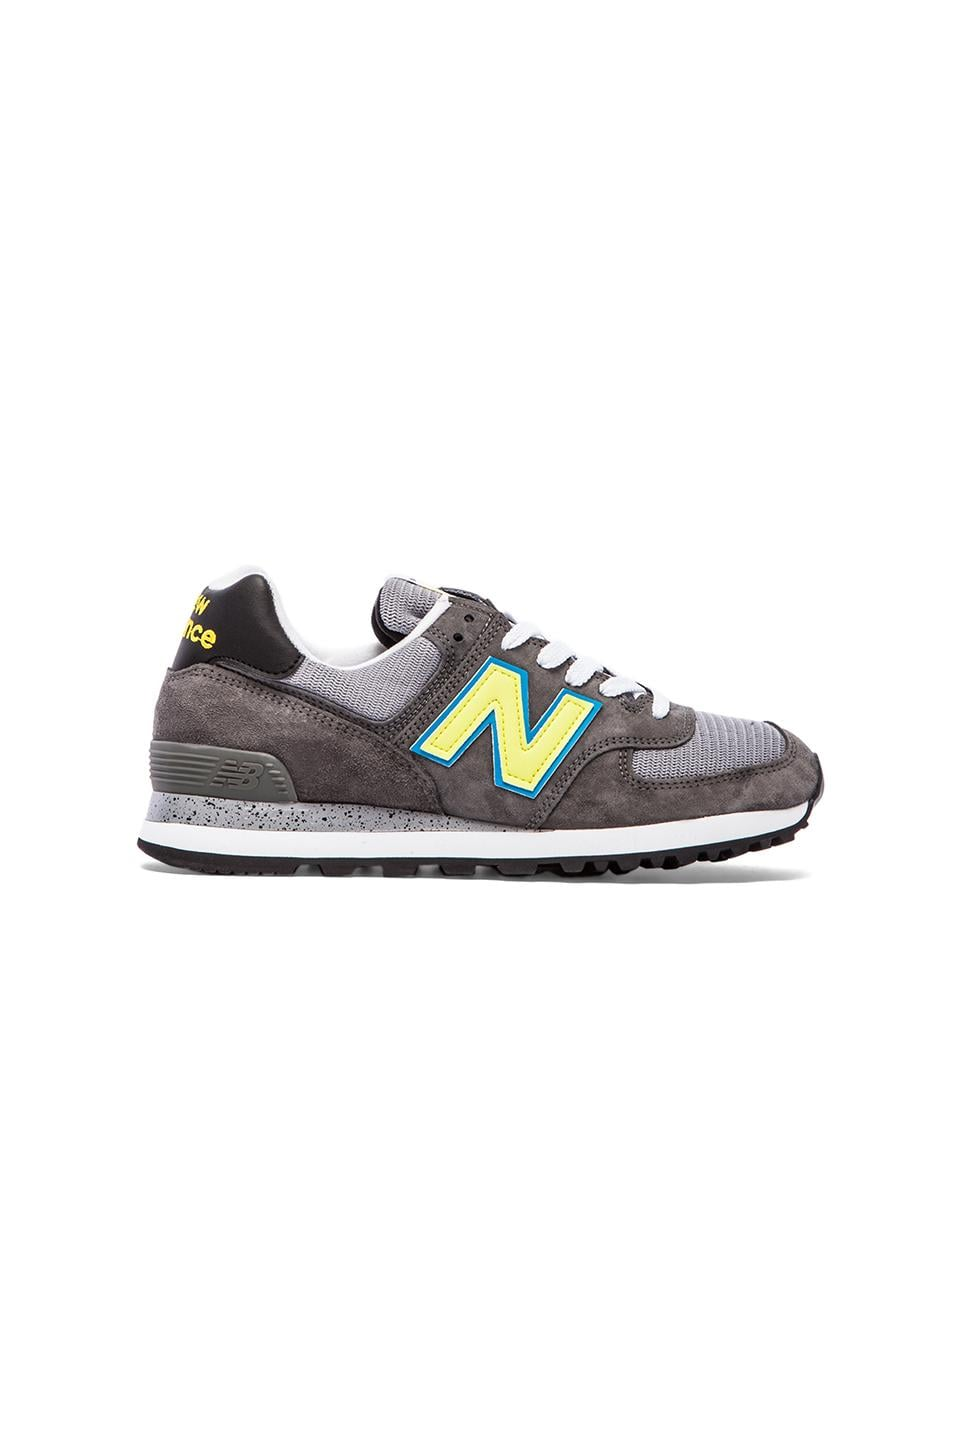 New Balance Made in USA US574 in Castle Rock